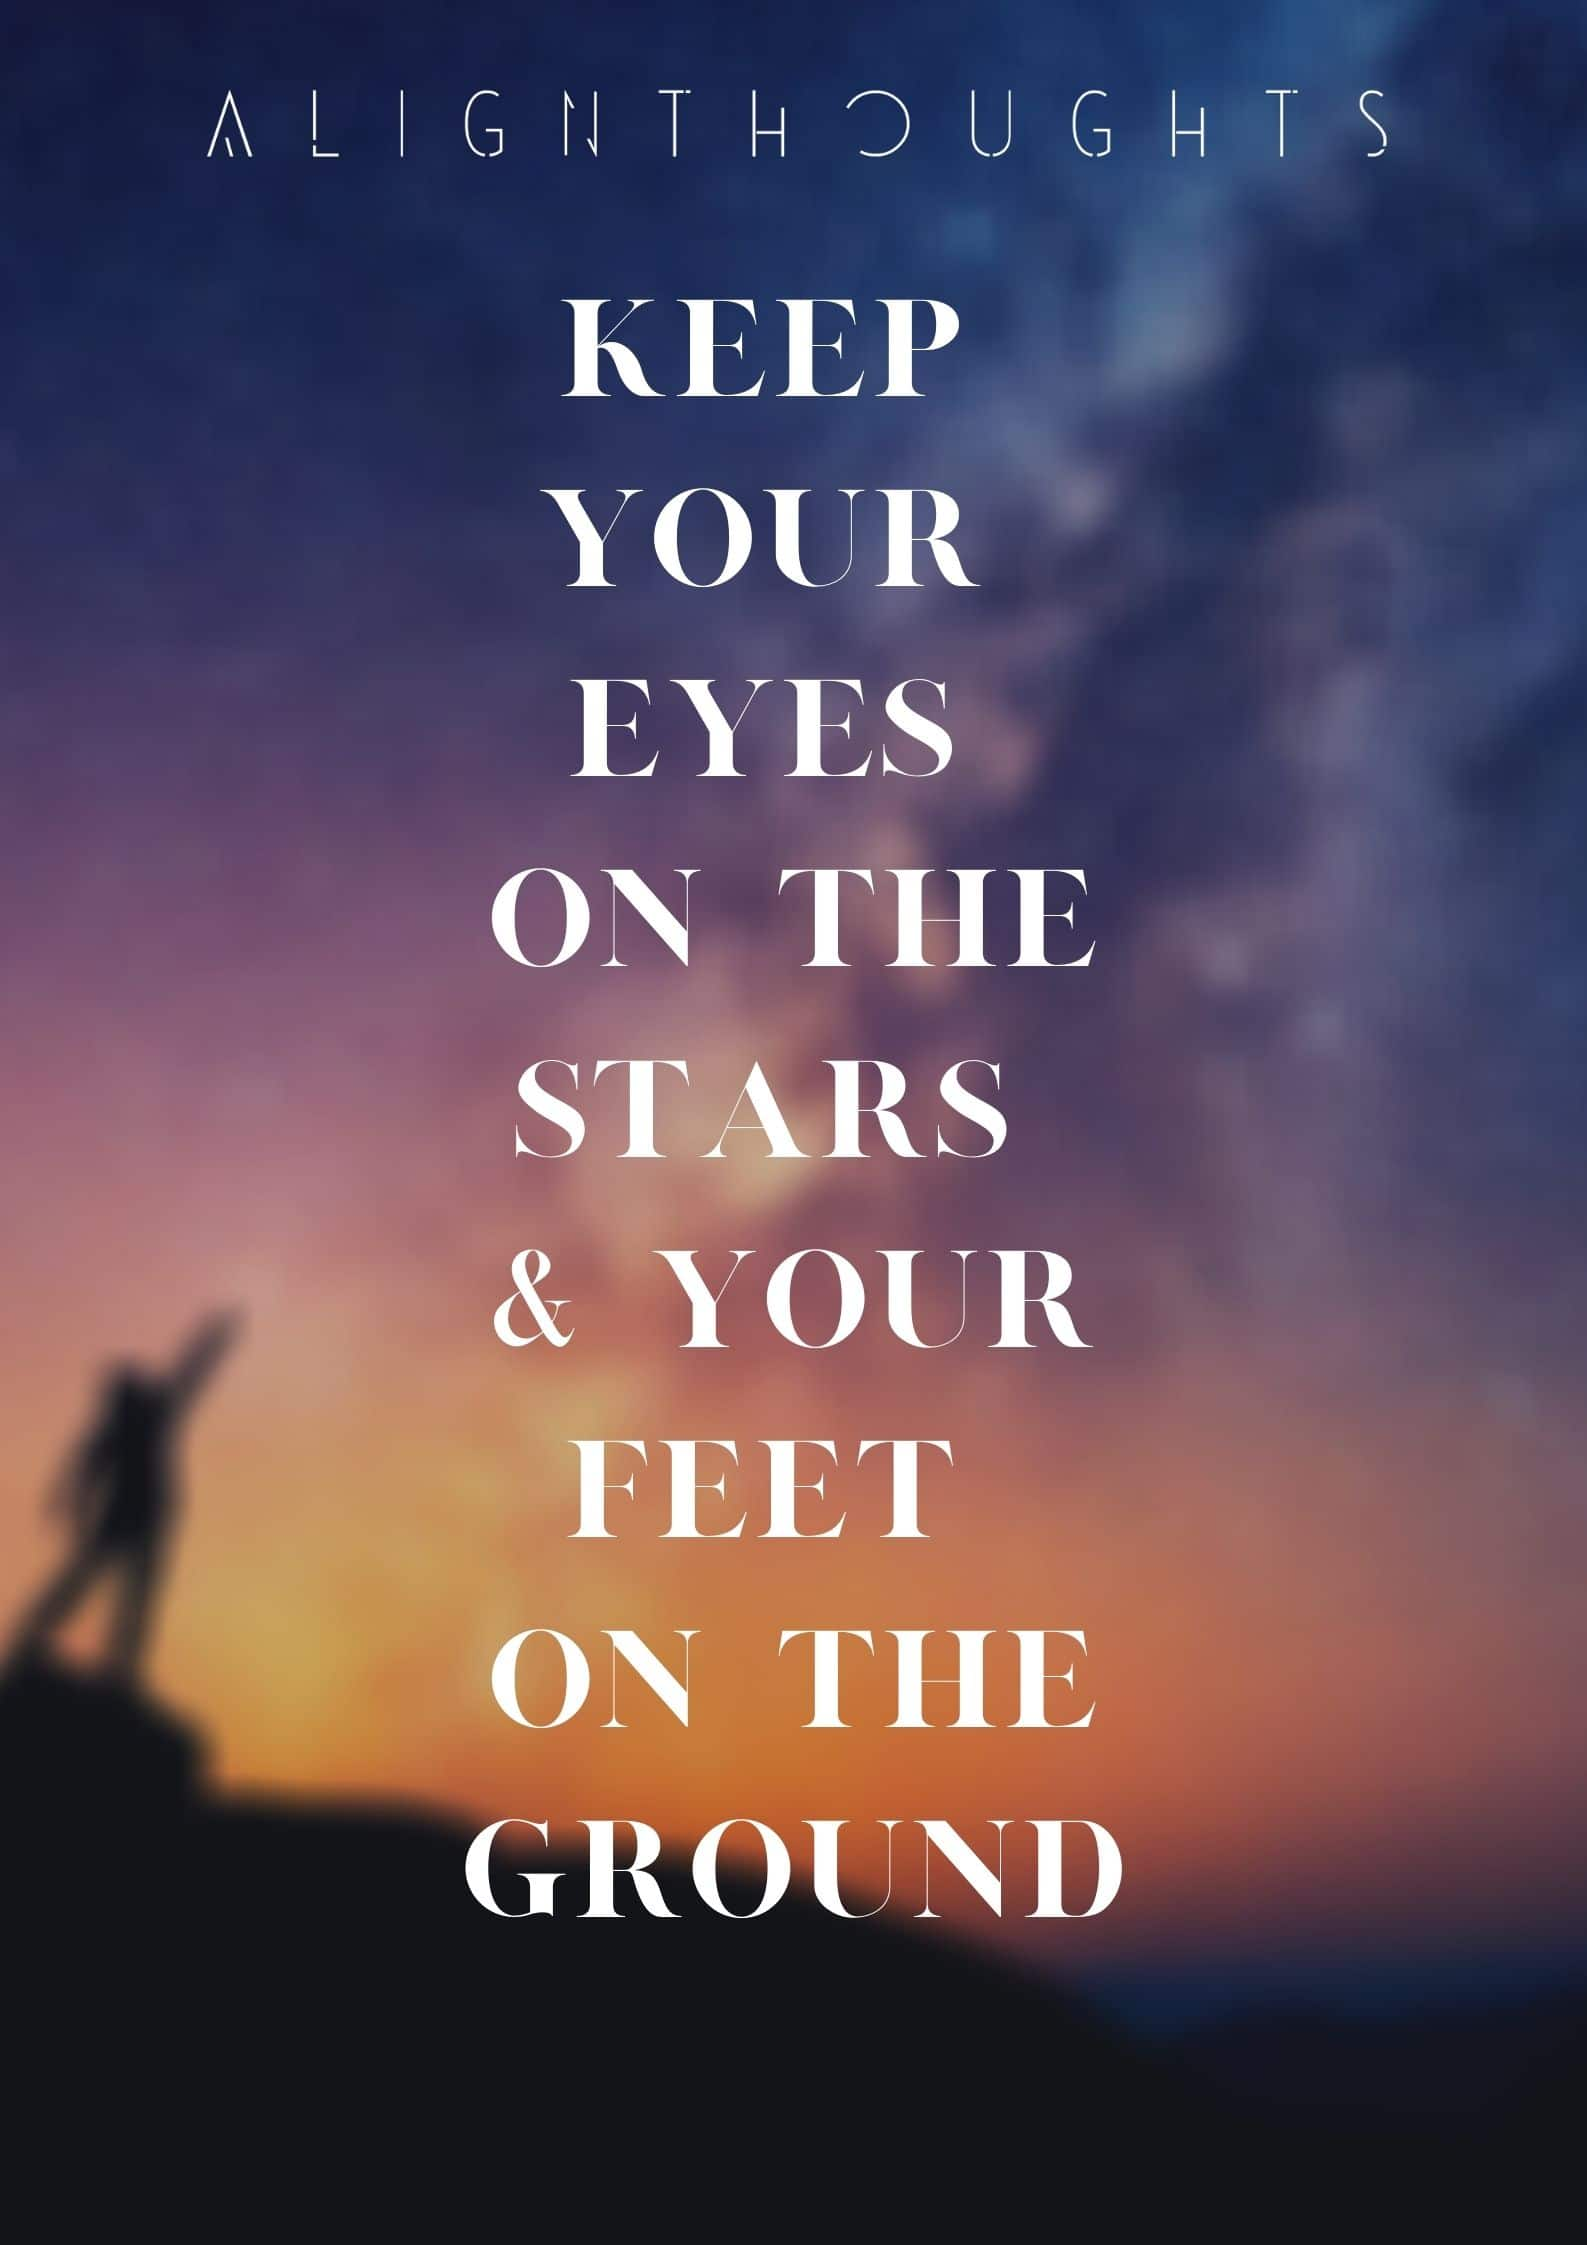 quote about stars-Keep Your Eyes On The Stars And Your Feet On The Ground-alignthoughts